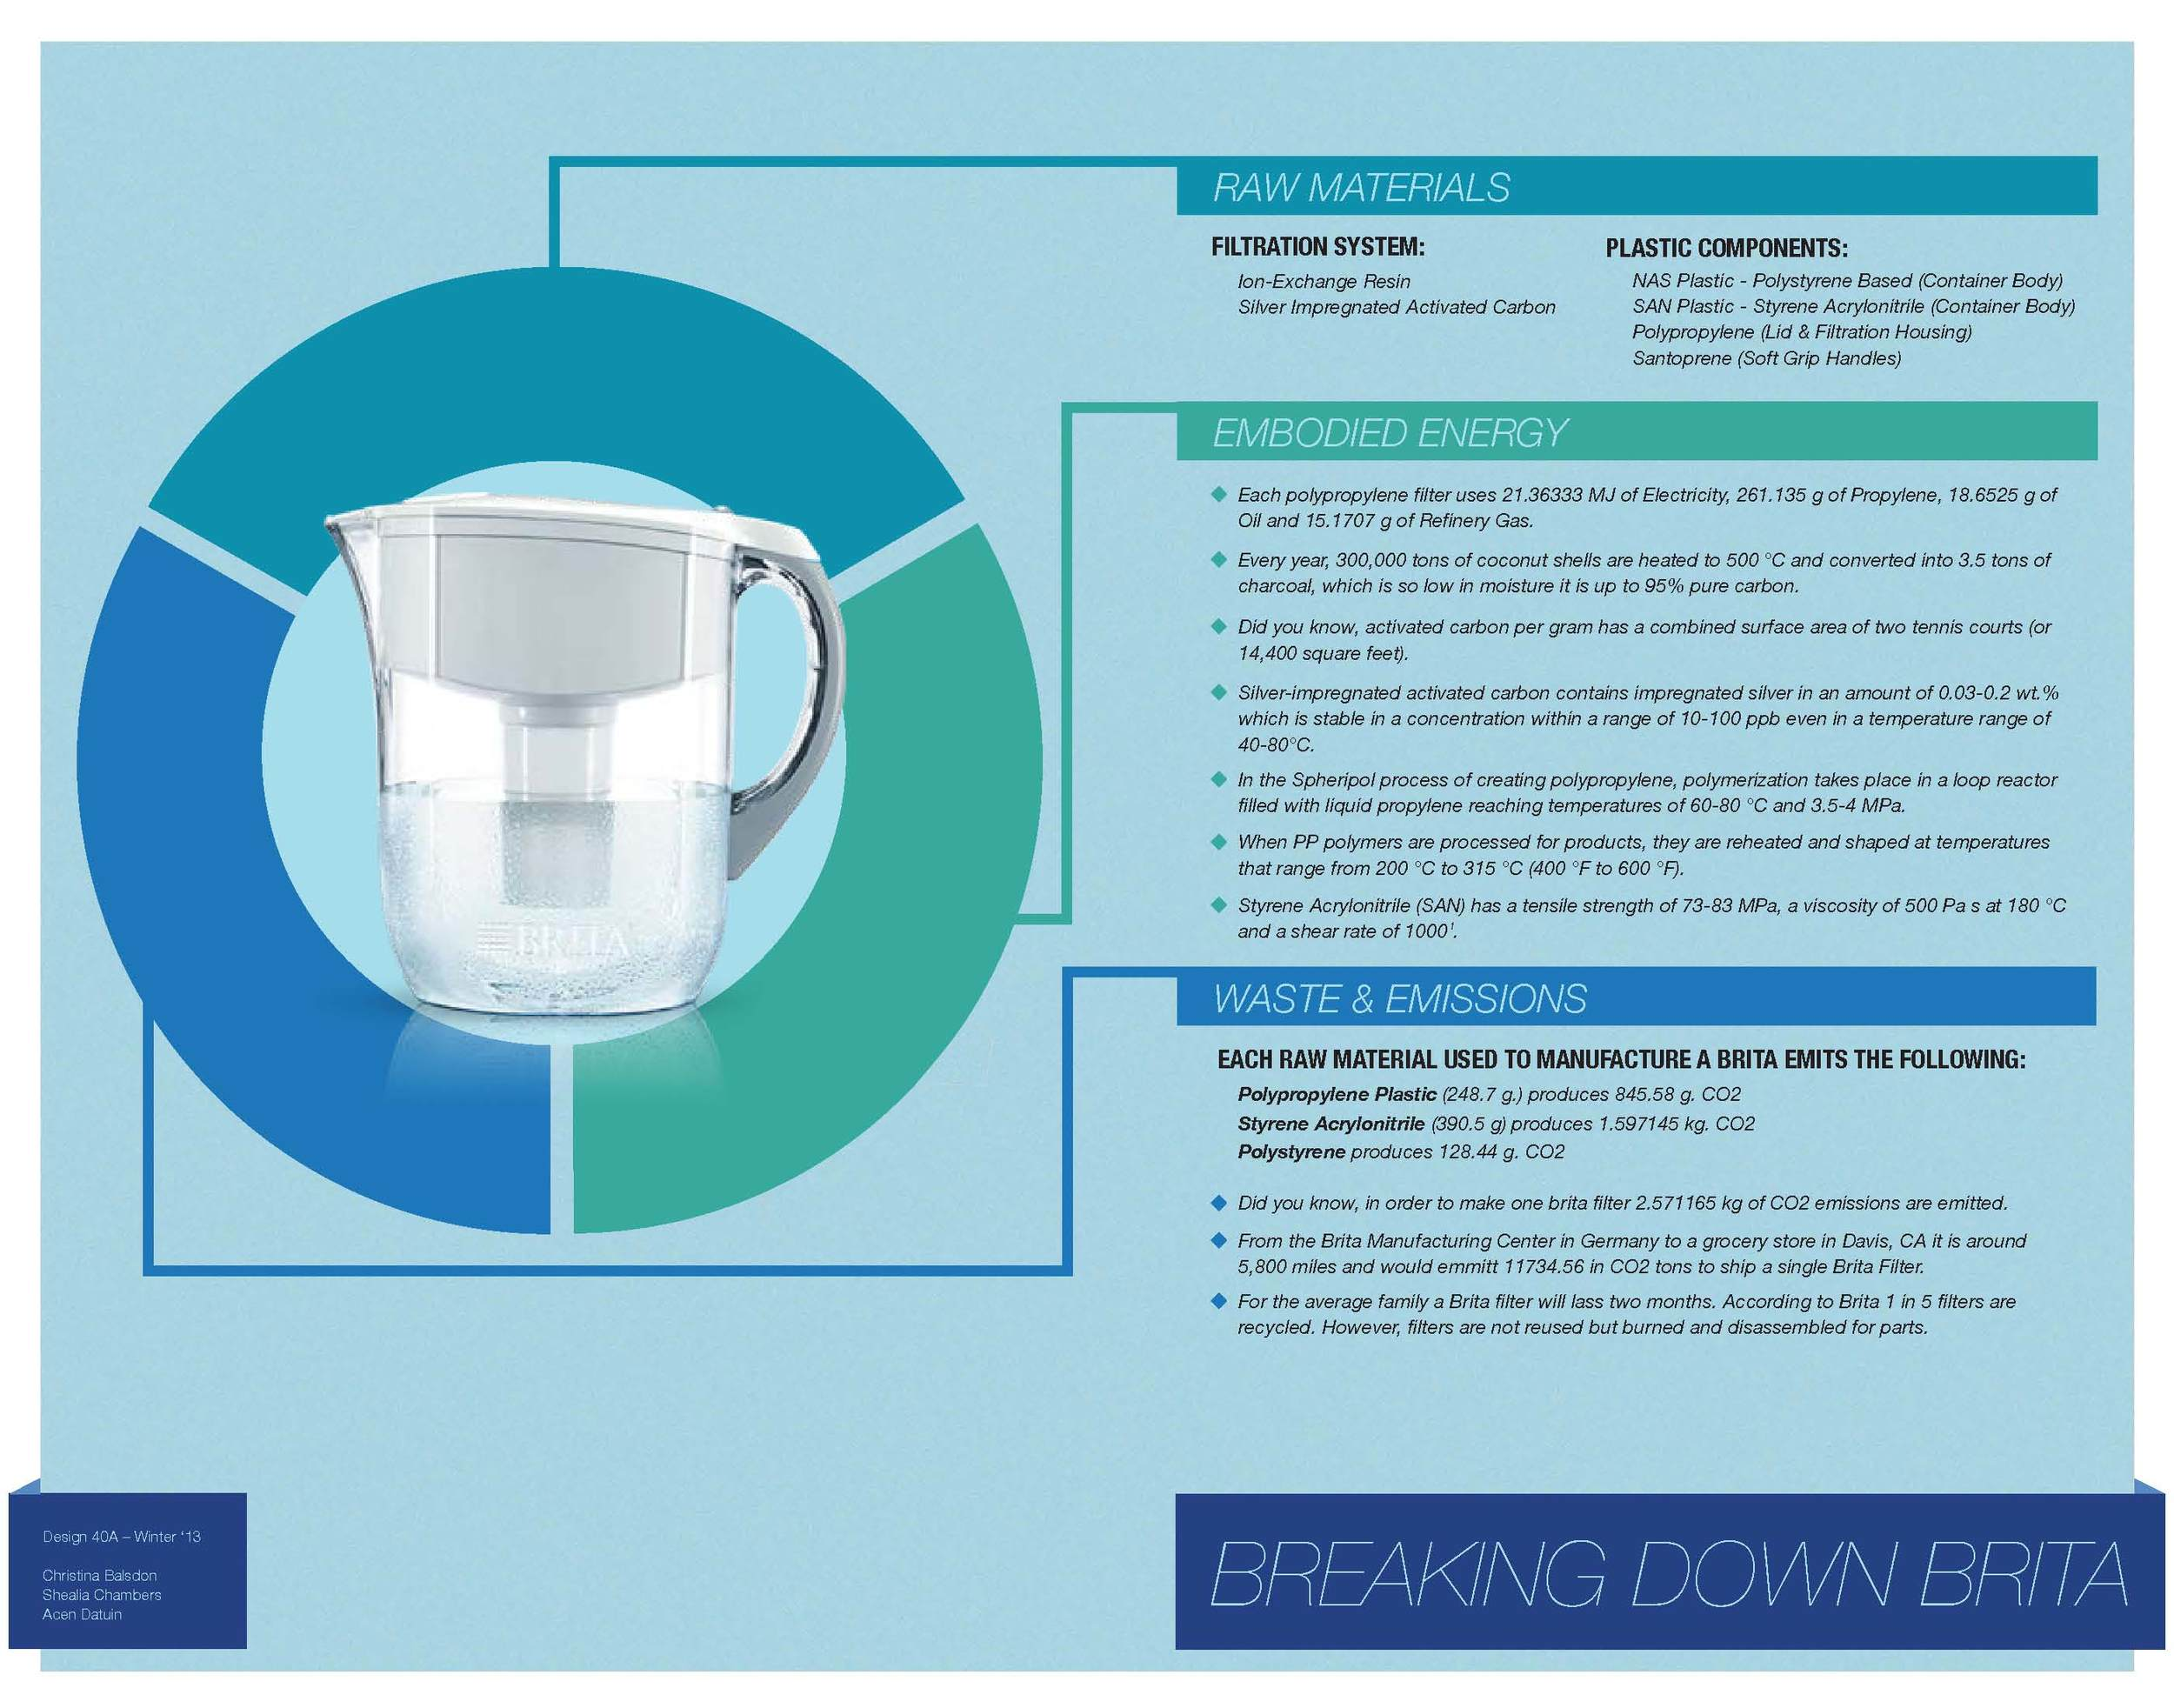 Brita Filters — Design Life-Cycle